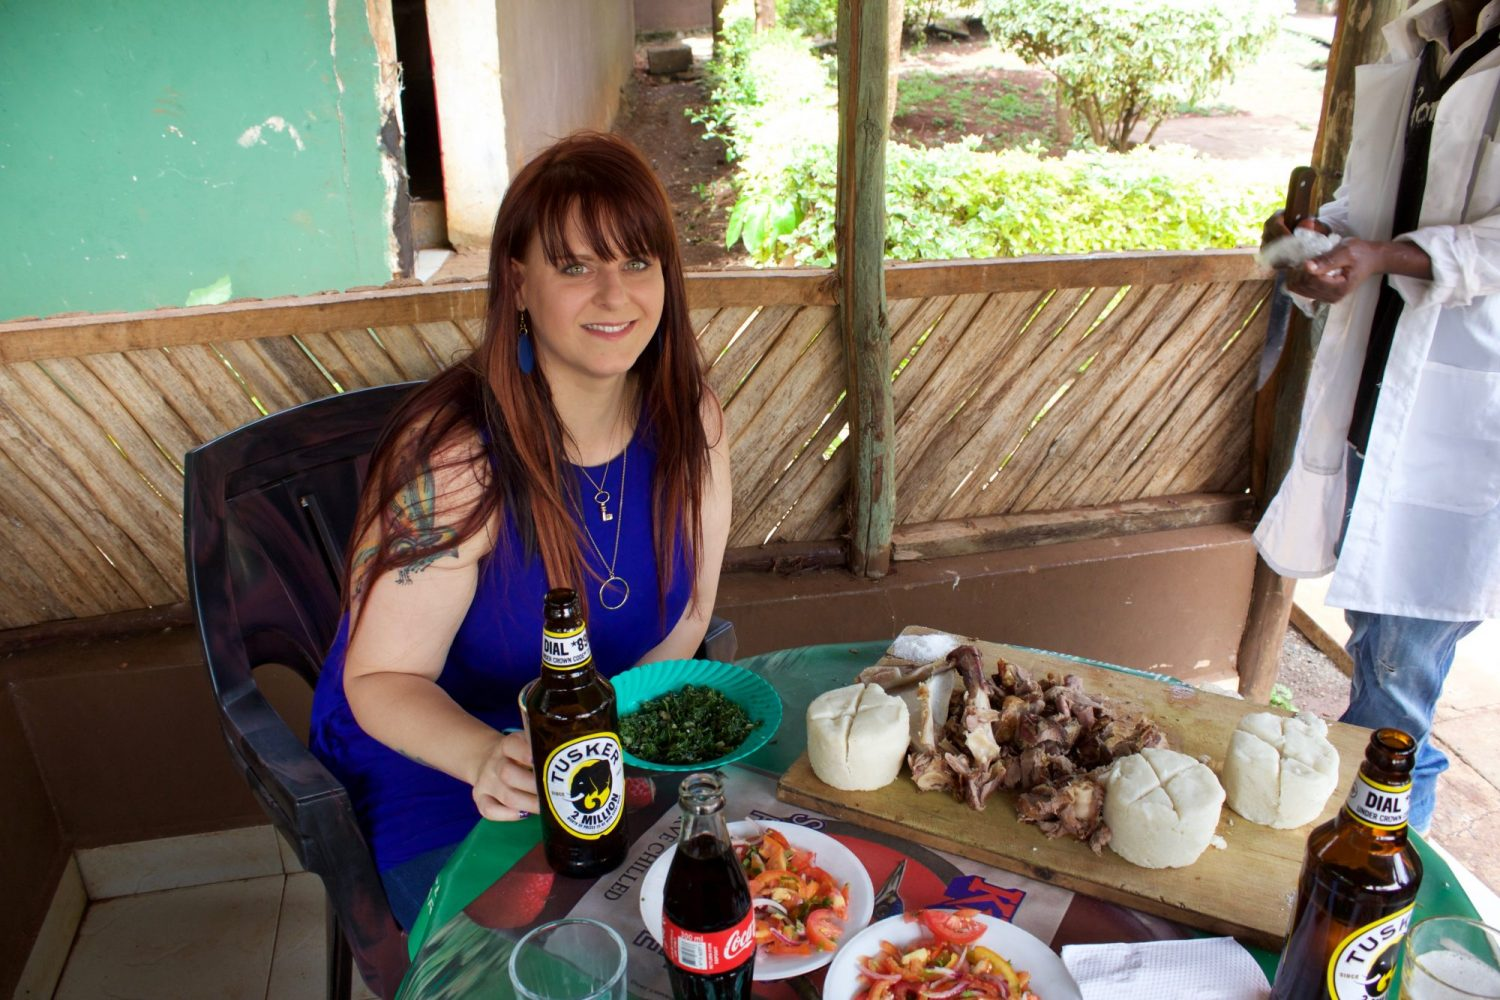 Natalie Brown Kenya 2015 Eating Kenyan Meal